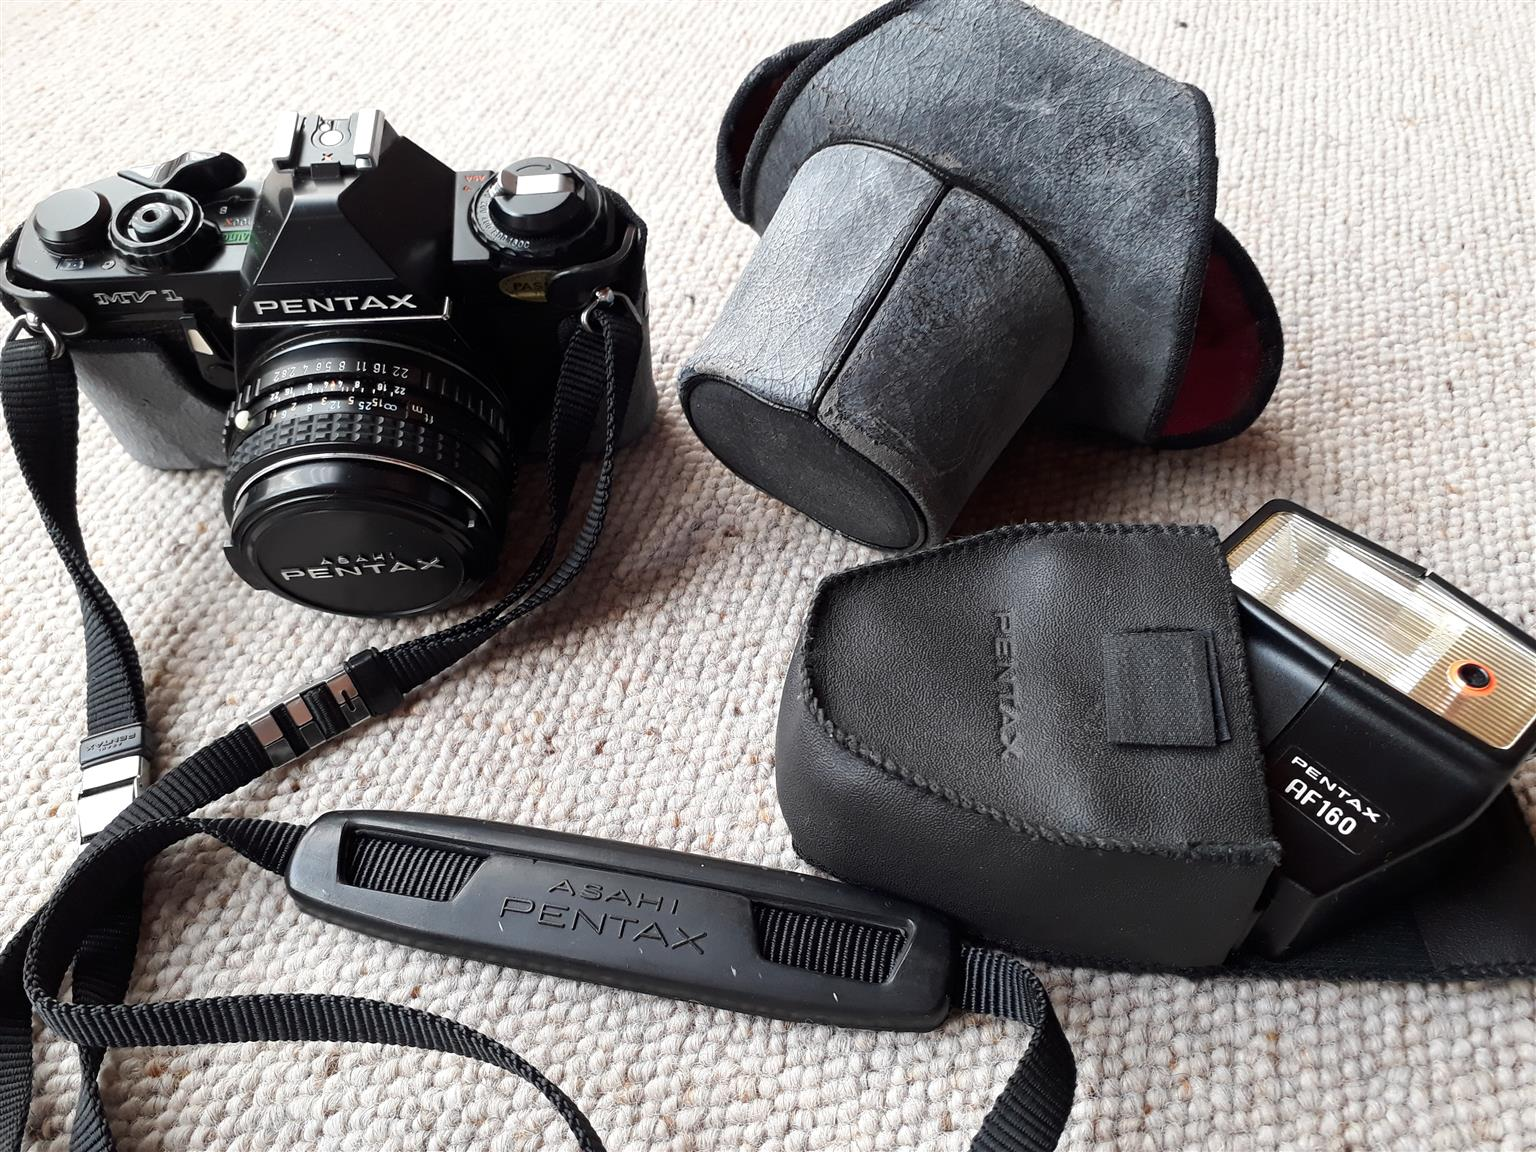 Pentax Asahi camera with flash and carry case